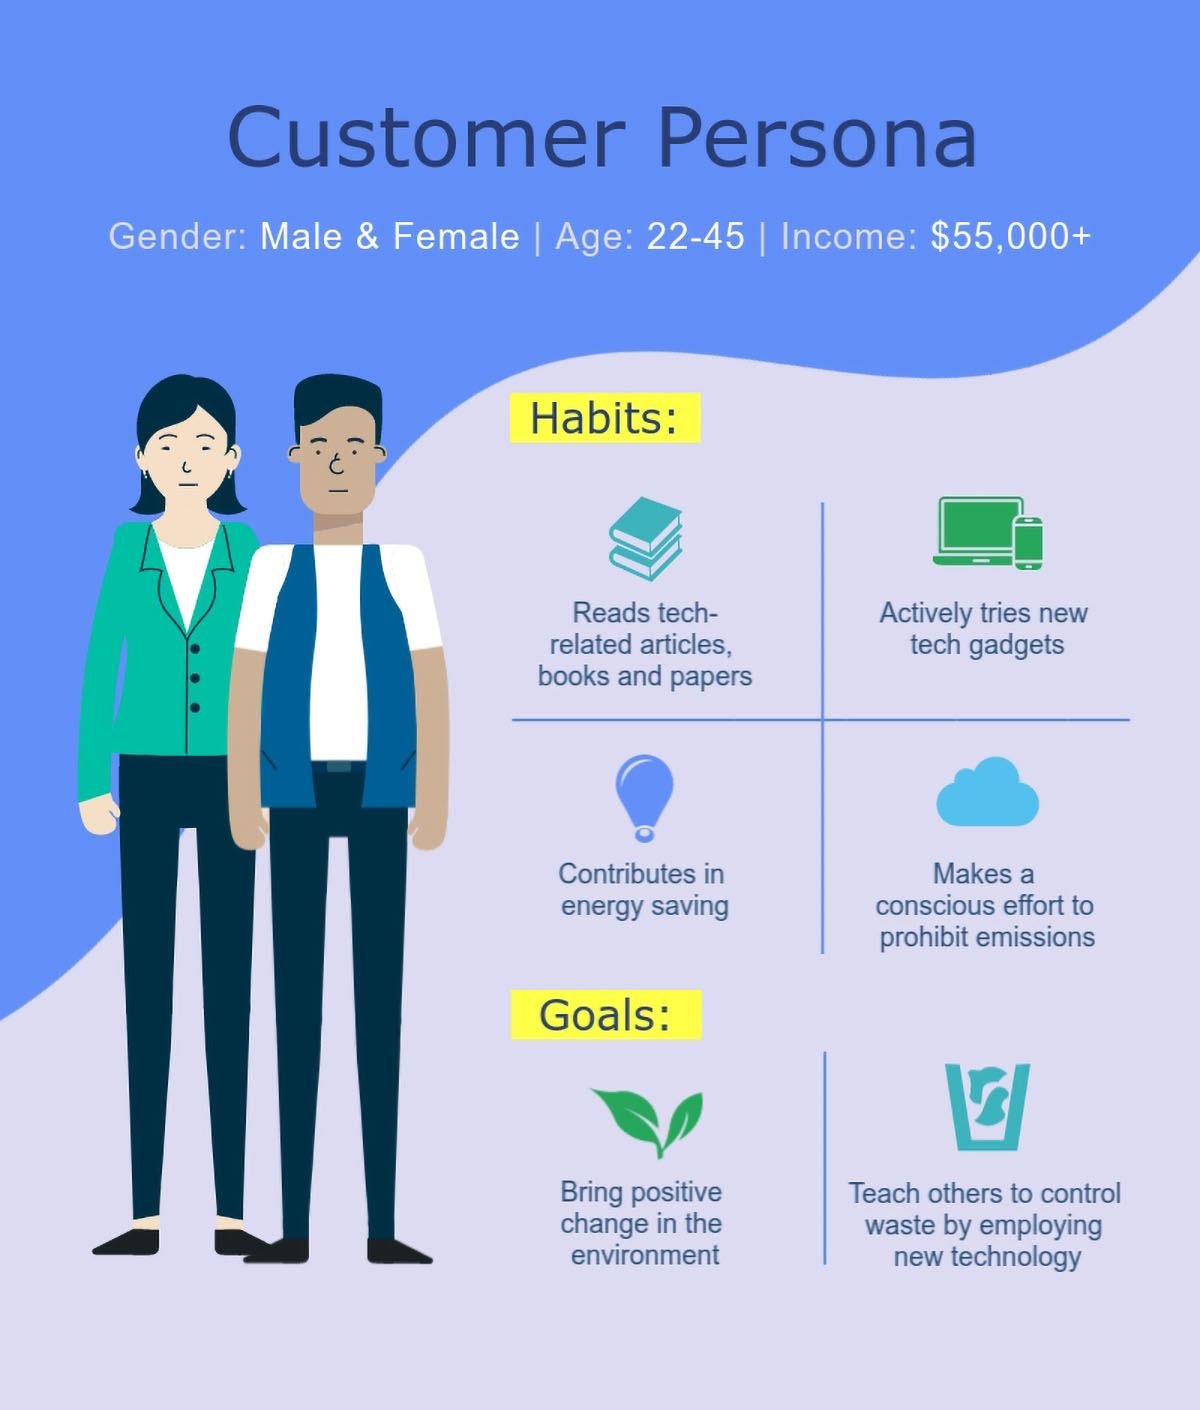 saas content marketing - create a customer persona